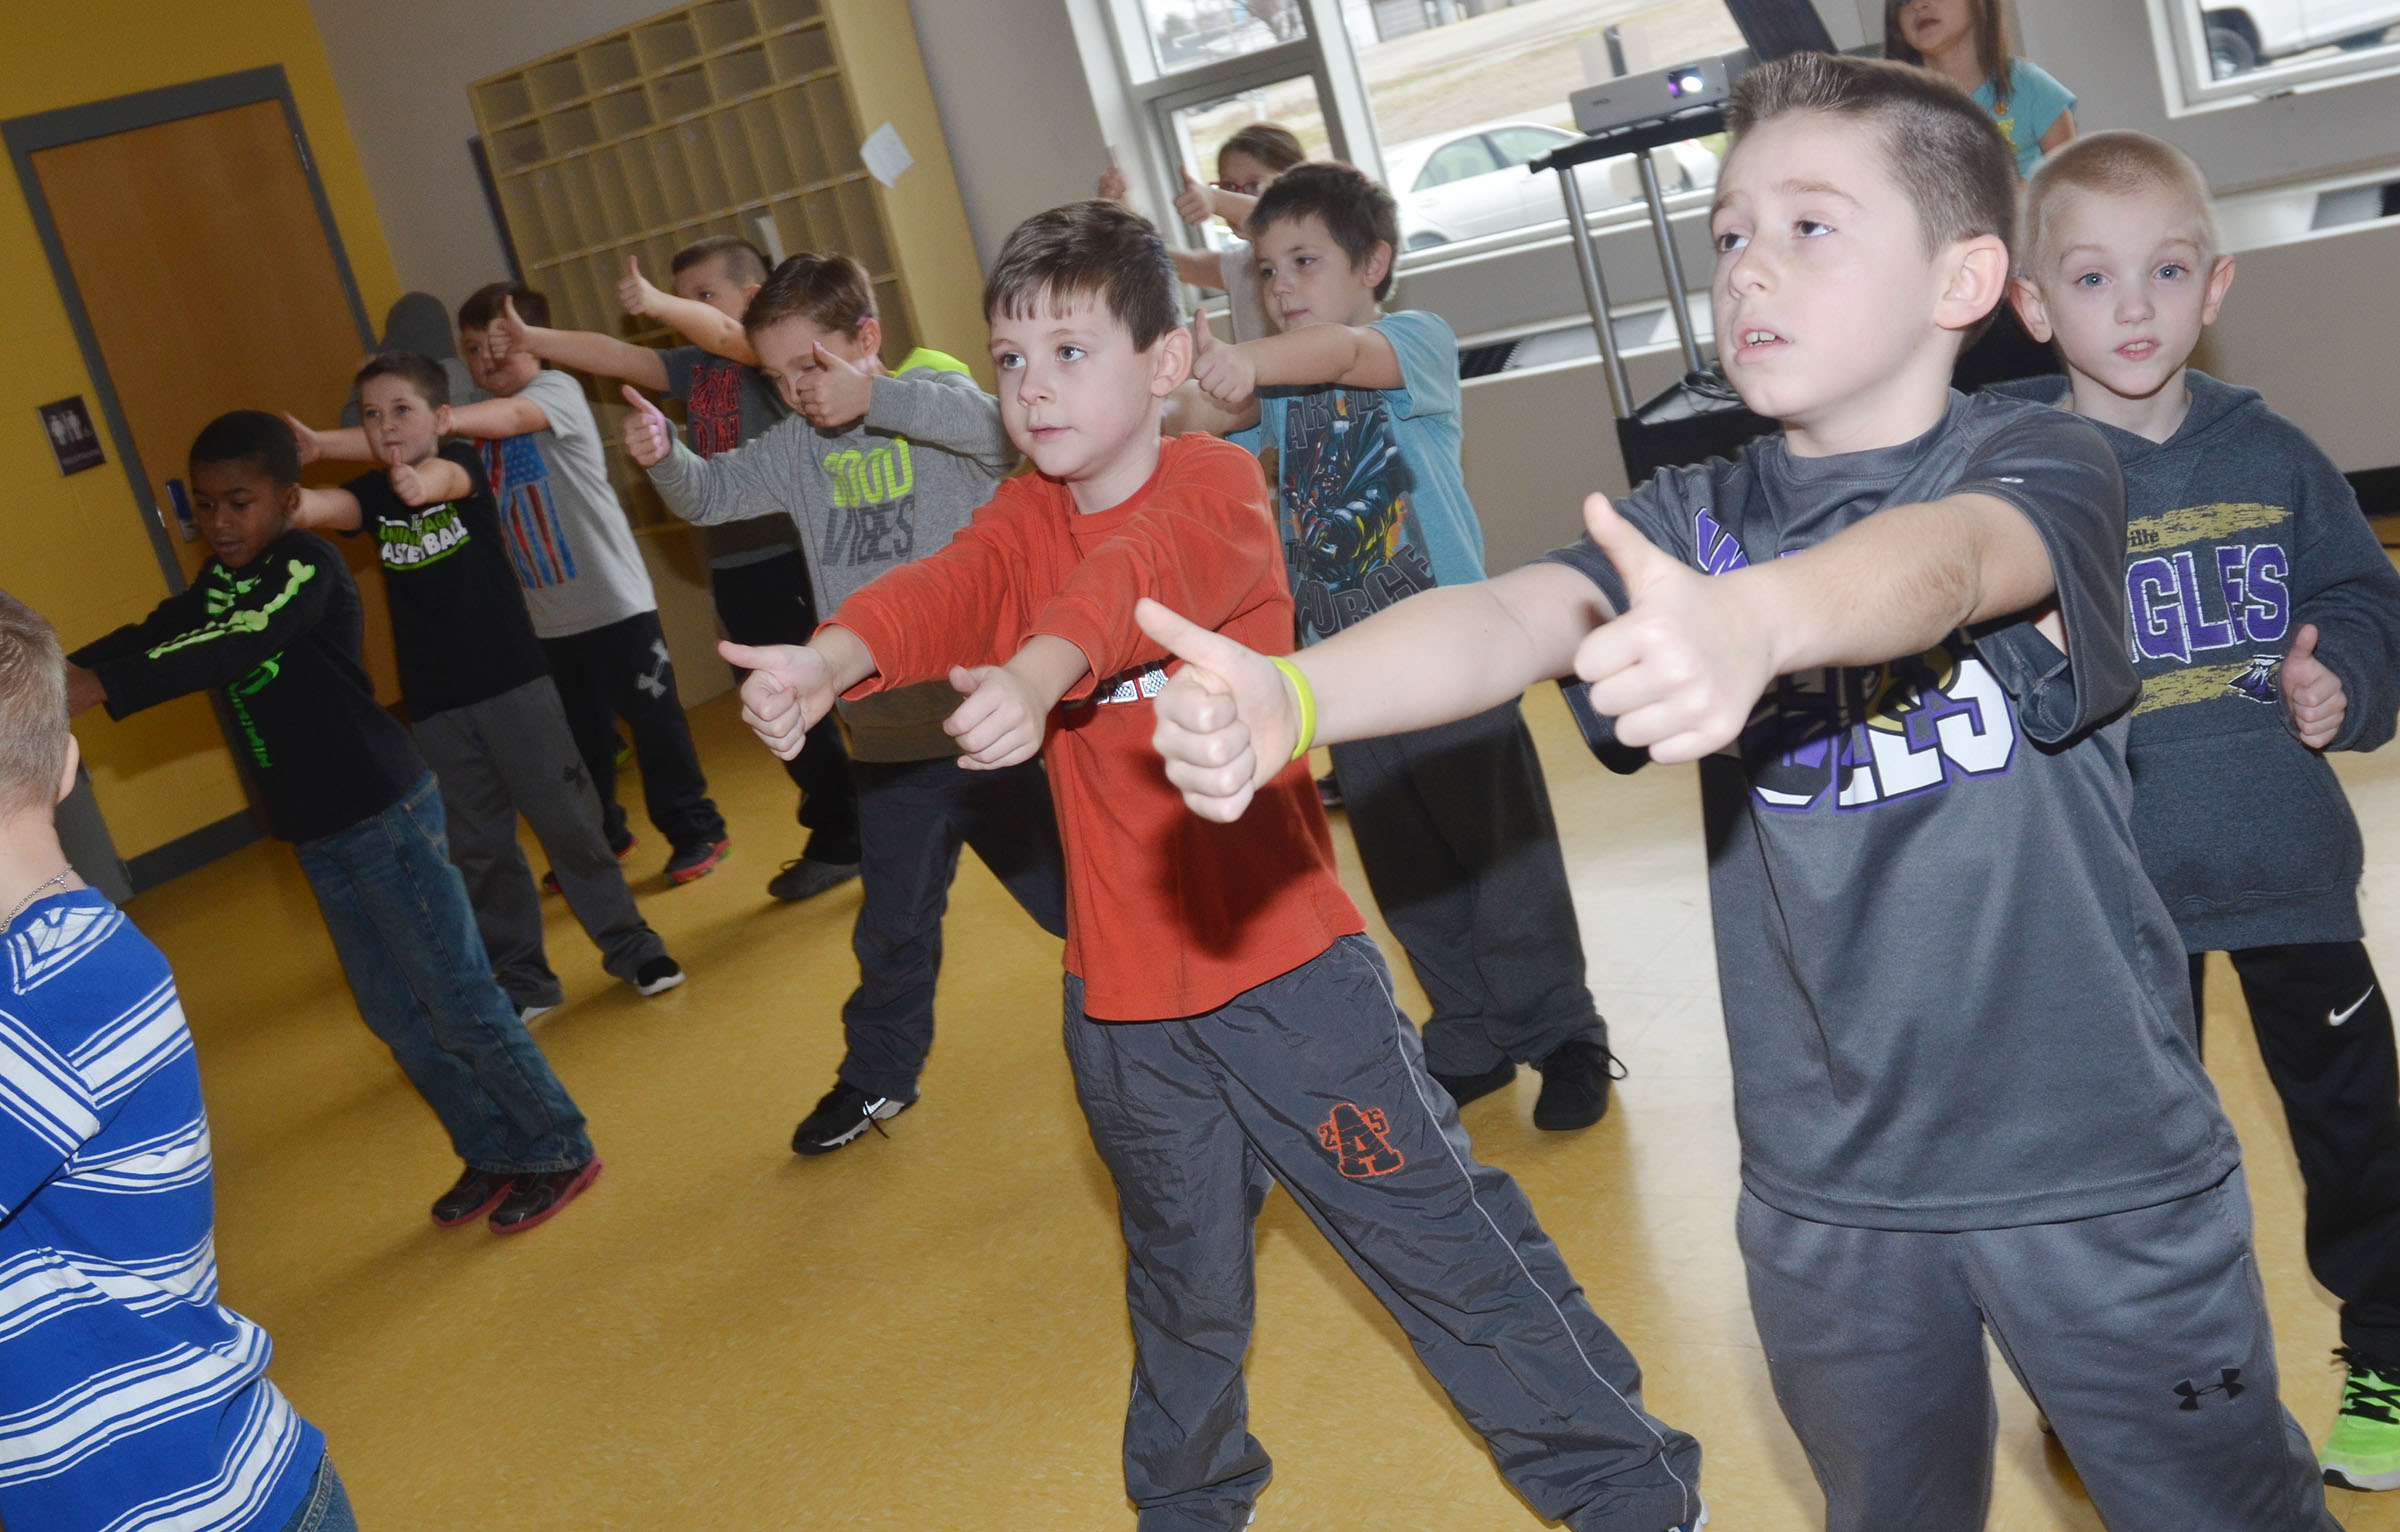 CES second-graders put their thumbs up as they work out. In front are Ryan Tungate, at left, and Lanigan Price.